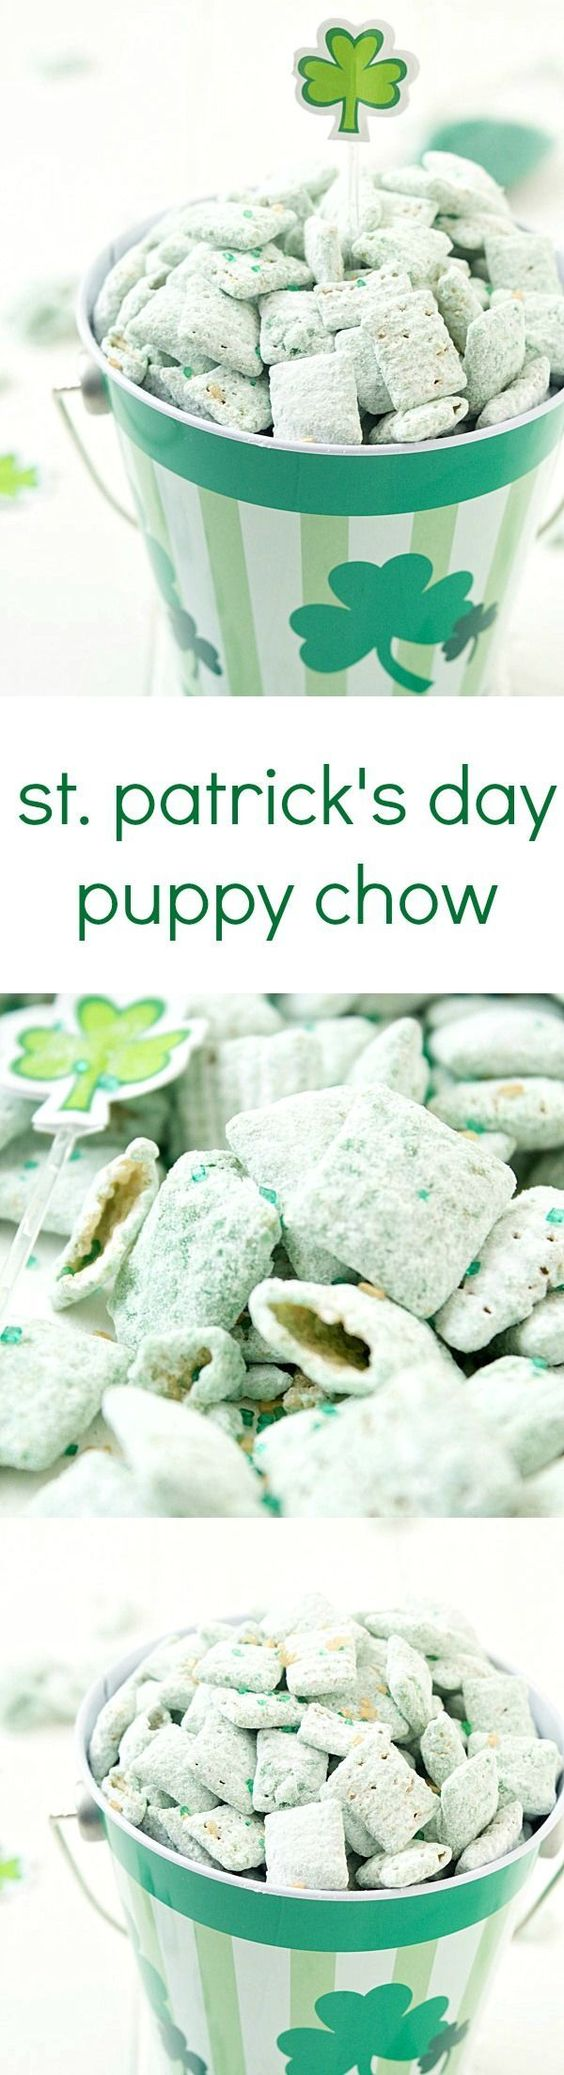 St. Patrick's Day Puppy Chow Recipe via Gal on a Mission - The perfect green and minty snack! Beware, it's highly addictive and you will not be able to stop! #easystpatricksdaydesserts #stpatricksday #stpatricksdayparty #stpatricksdaypartyfood #lucky #luckygreen #luckytreats #shamrocks #clovers #rainbowtreats #leprechantreats